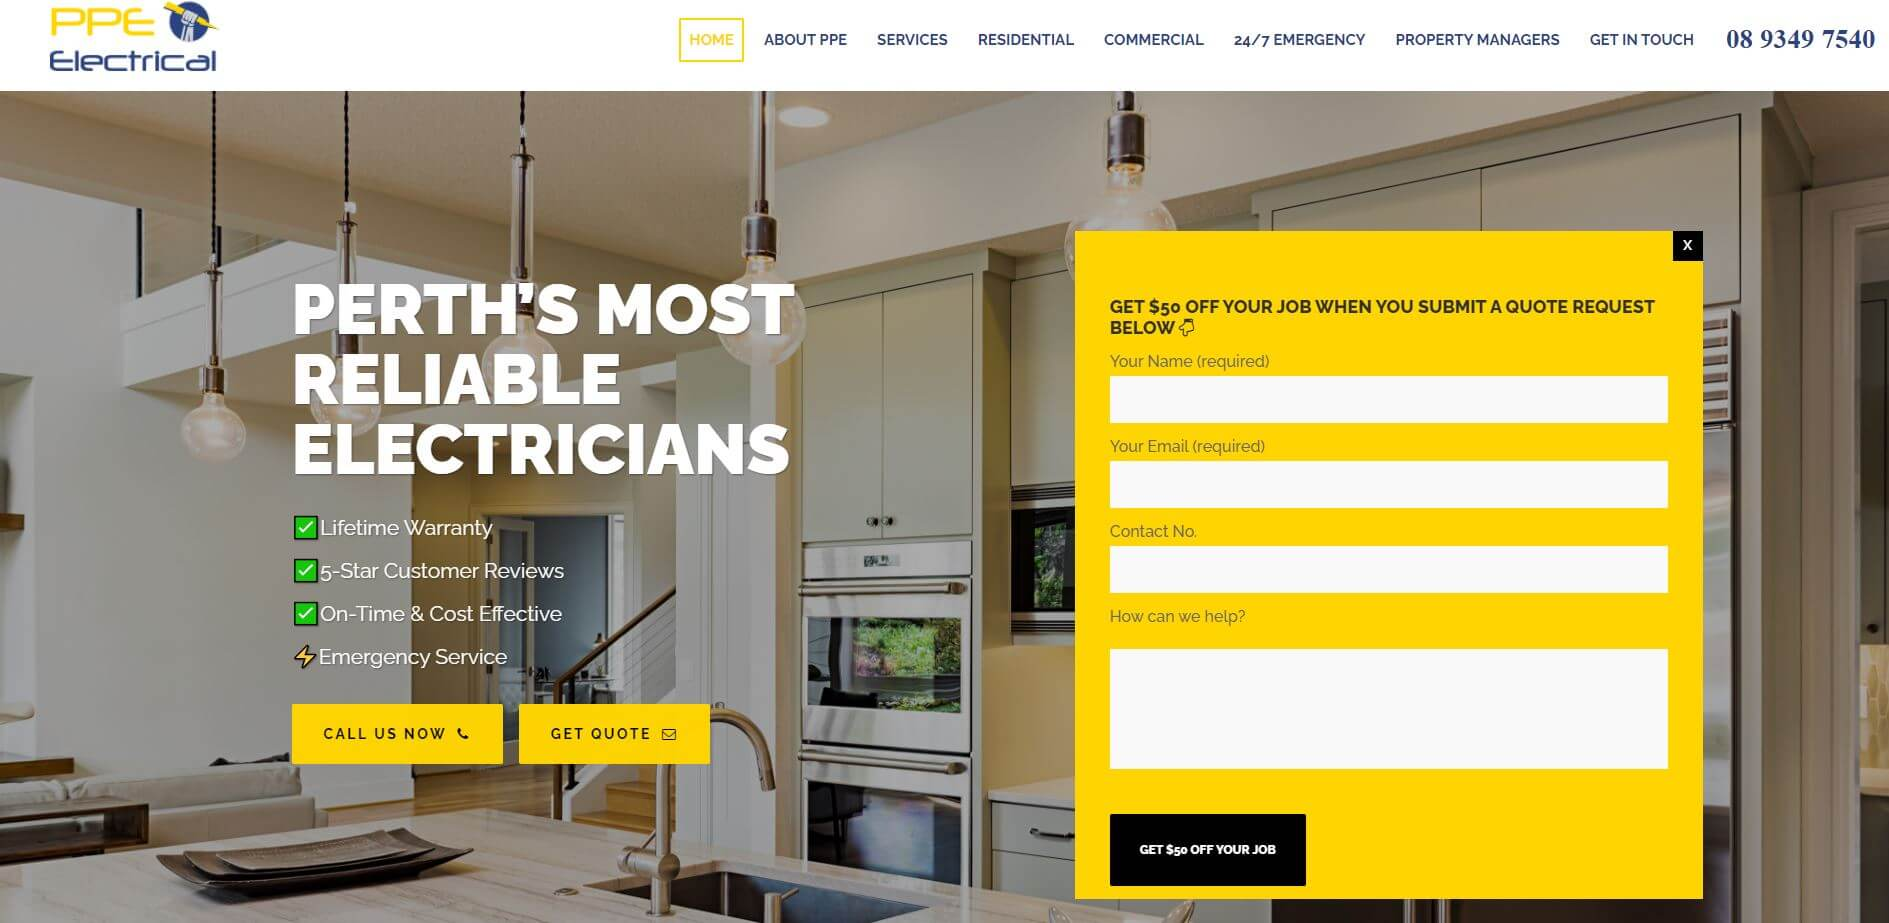 ppe electrical electricians in perth